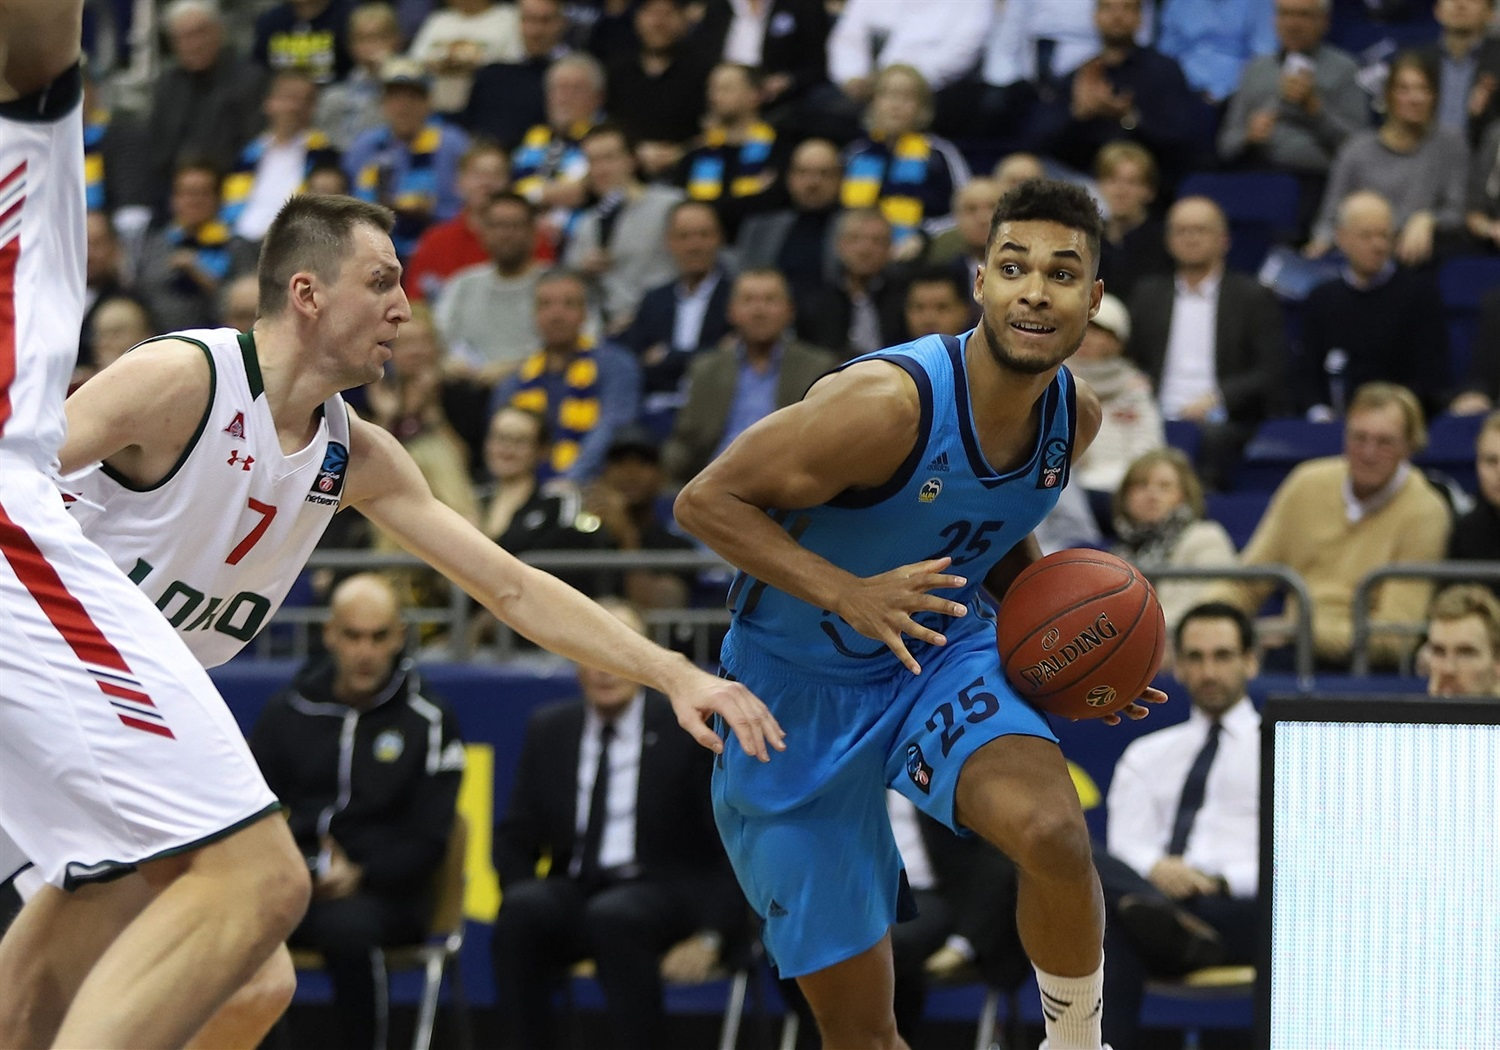 Kenneth Ogbe - ALBA Berlin (photo Andreas Knopf - ALBA) - EC18